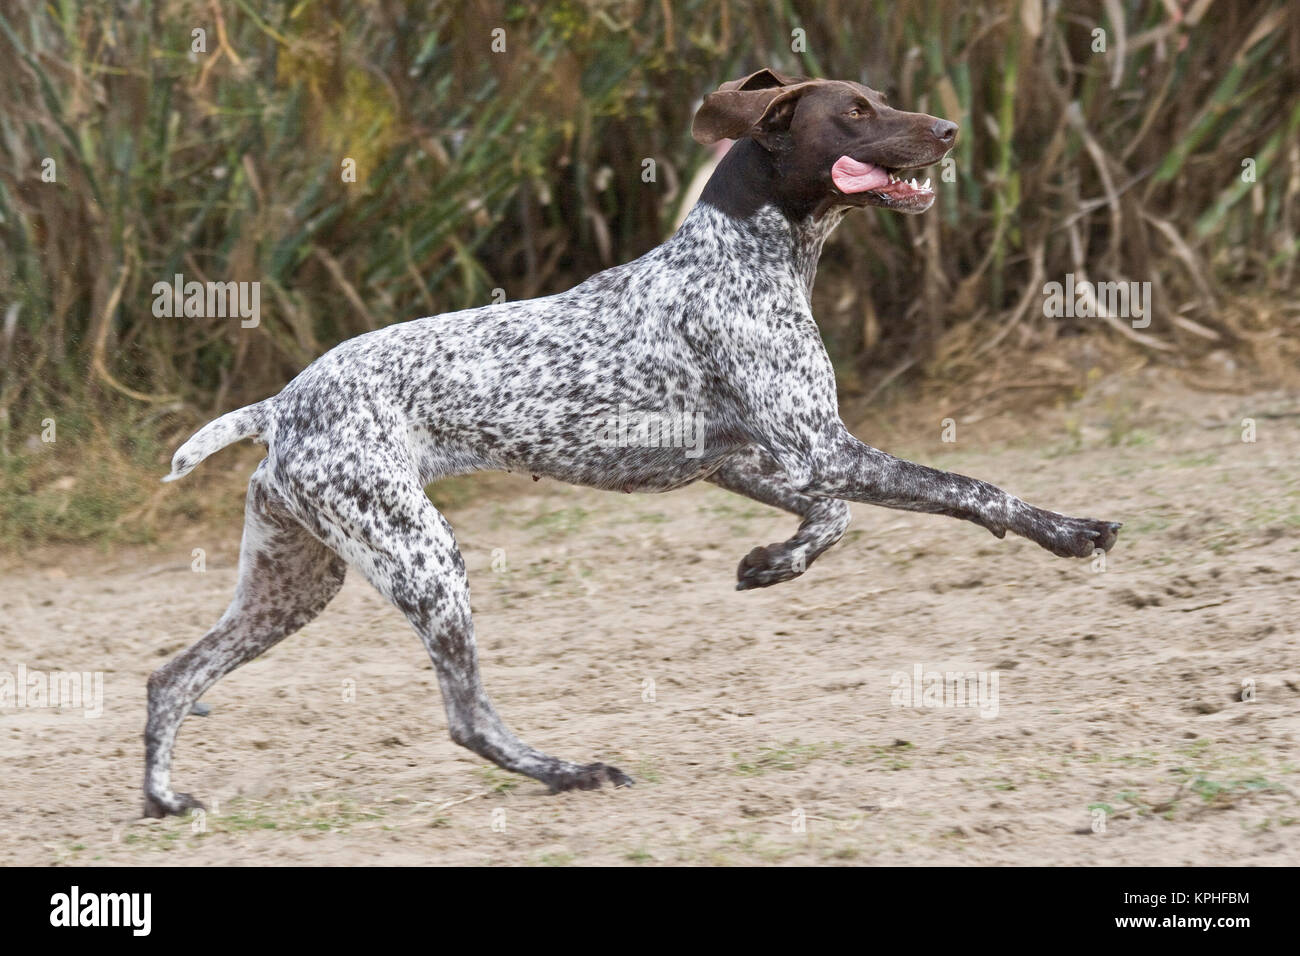 A German Shorthaired Pointer running and jumping. - Stock Image